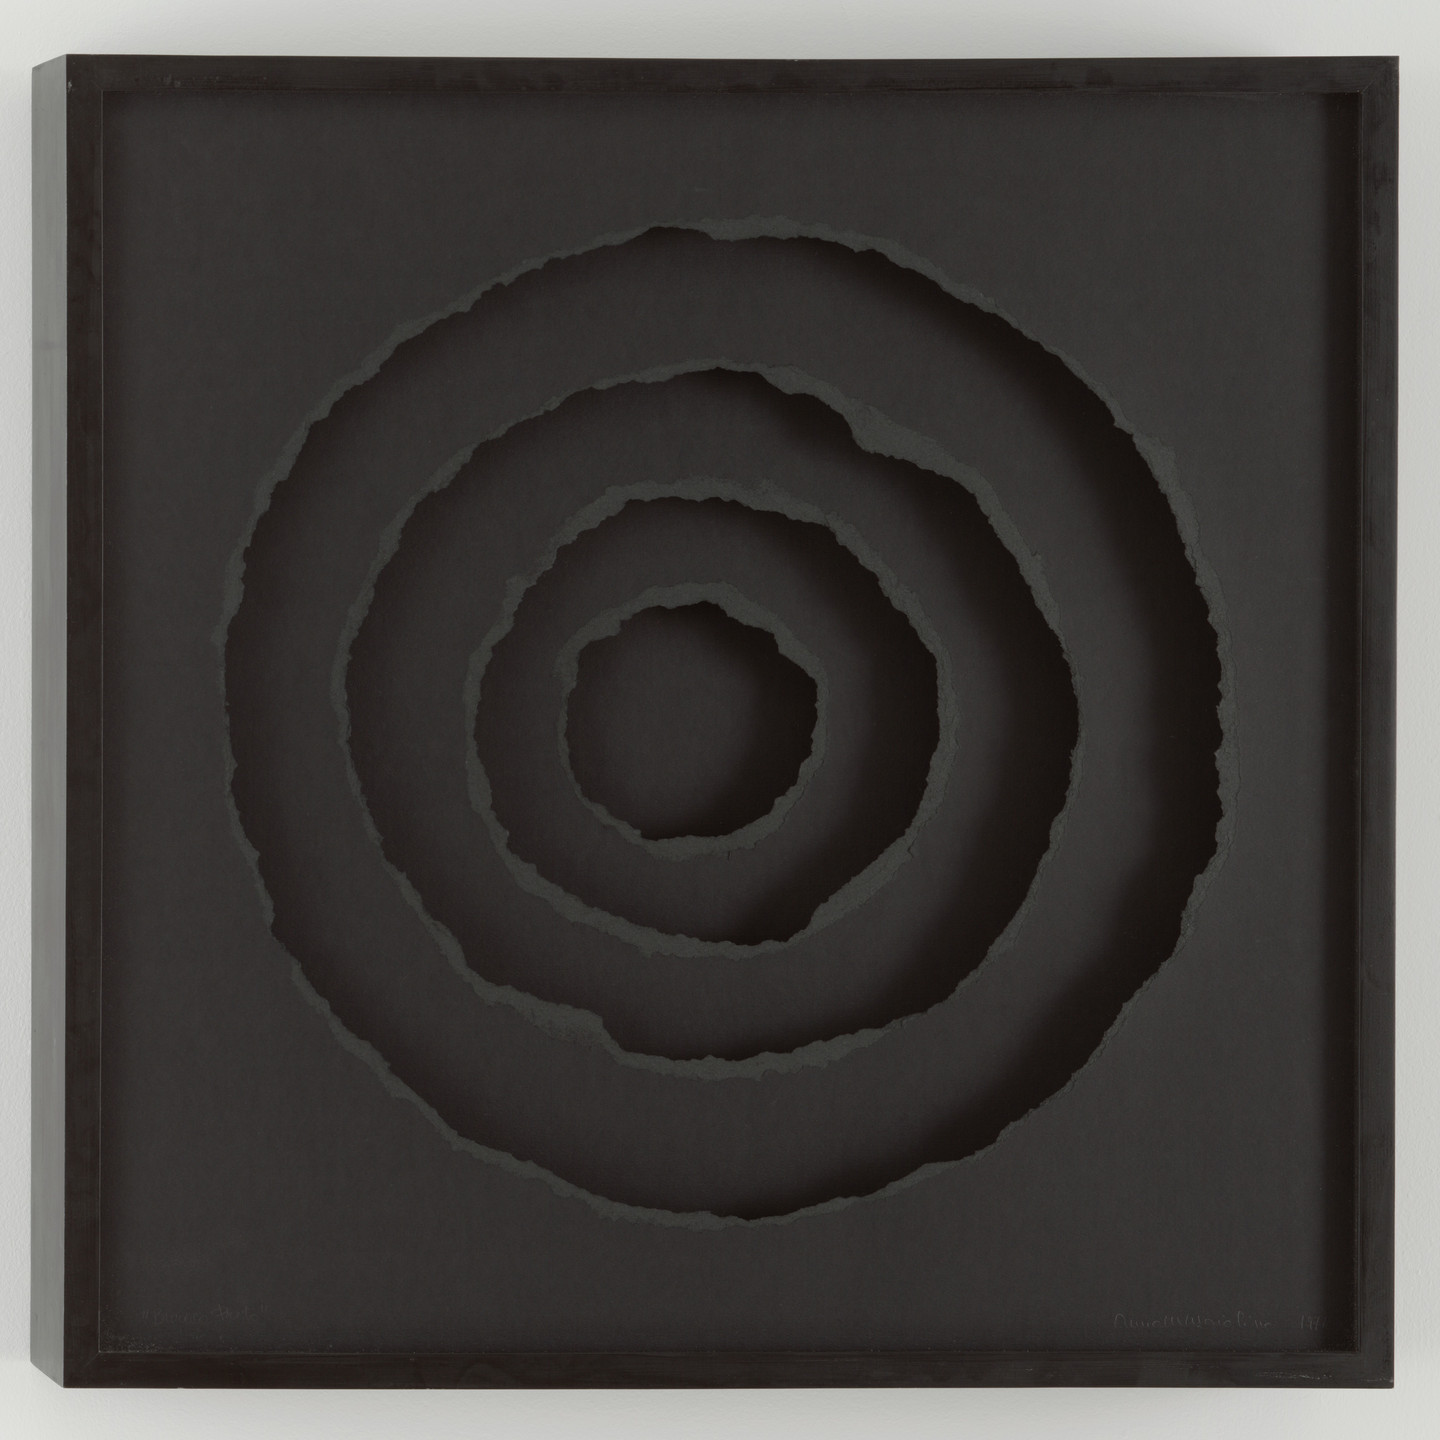 Anna Maria Maiolino. Black Hole (Buraco Preto) from the series Holes/Drawing Objects (Os Buracos/Desenhos Objetos). 1974